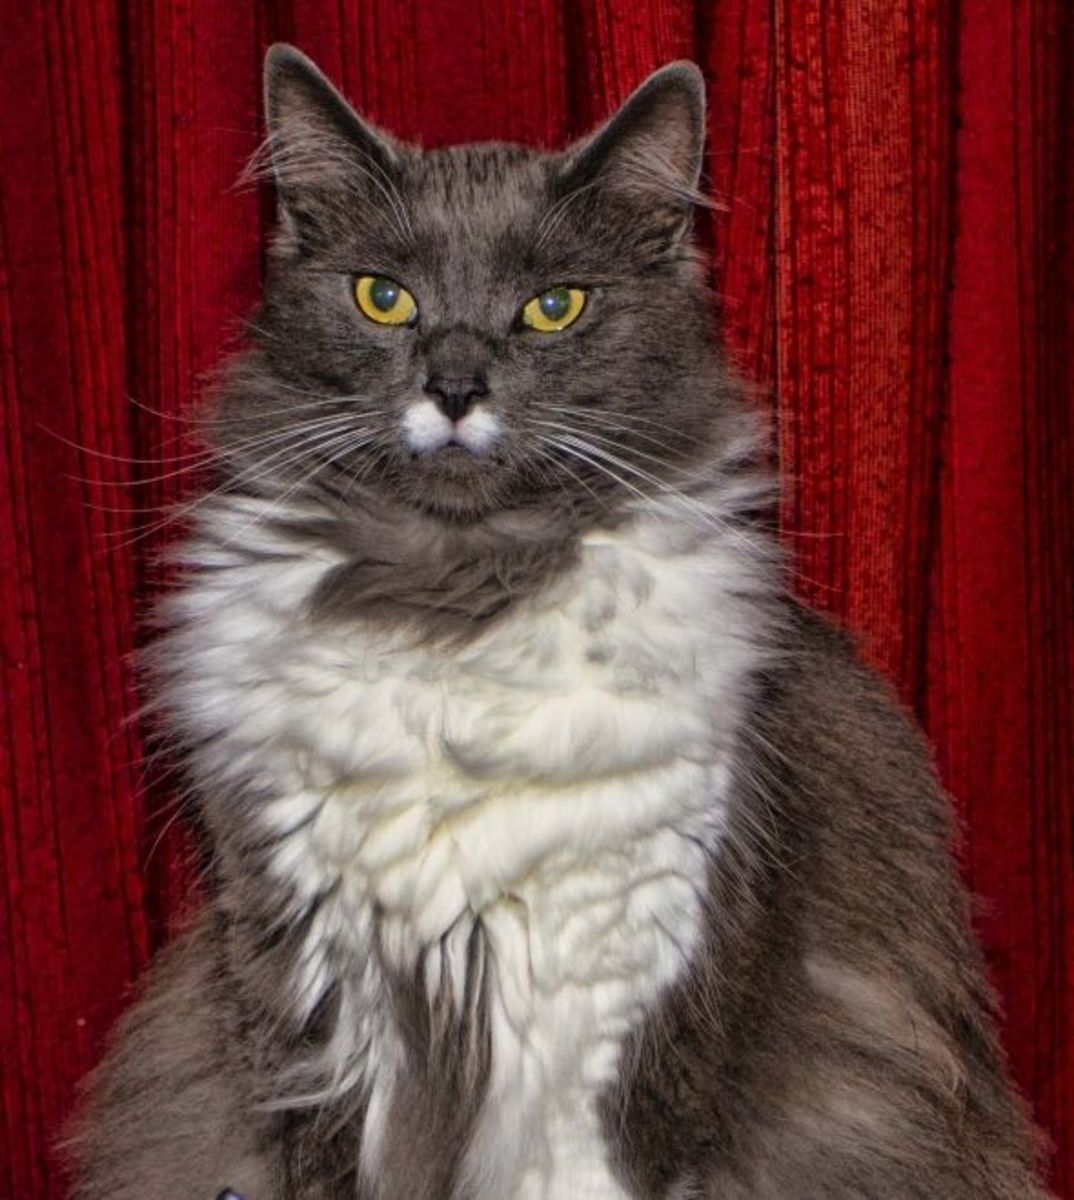 Greebo, who takes after his Maine Coon father.